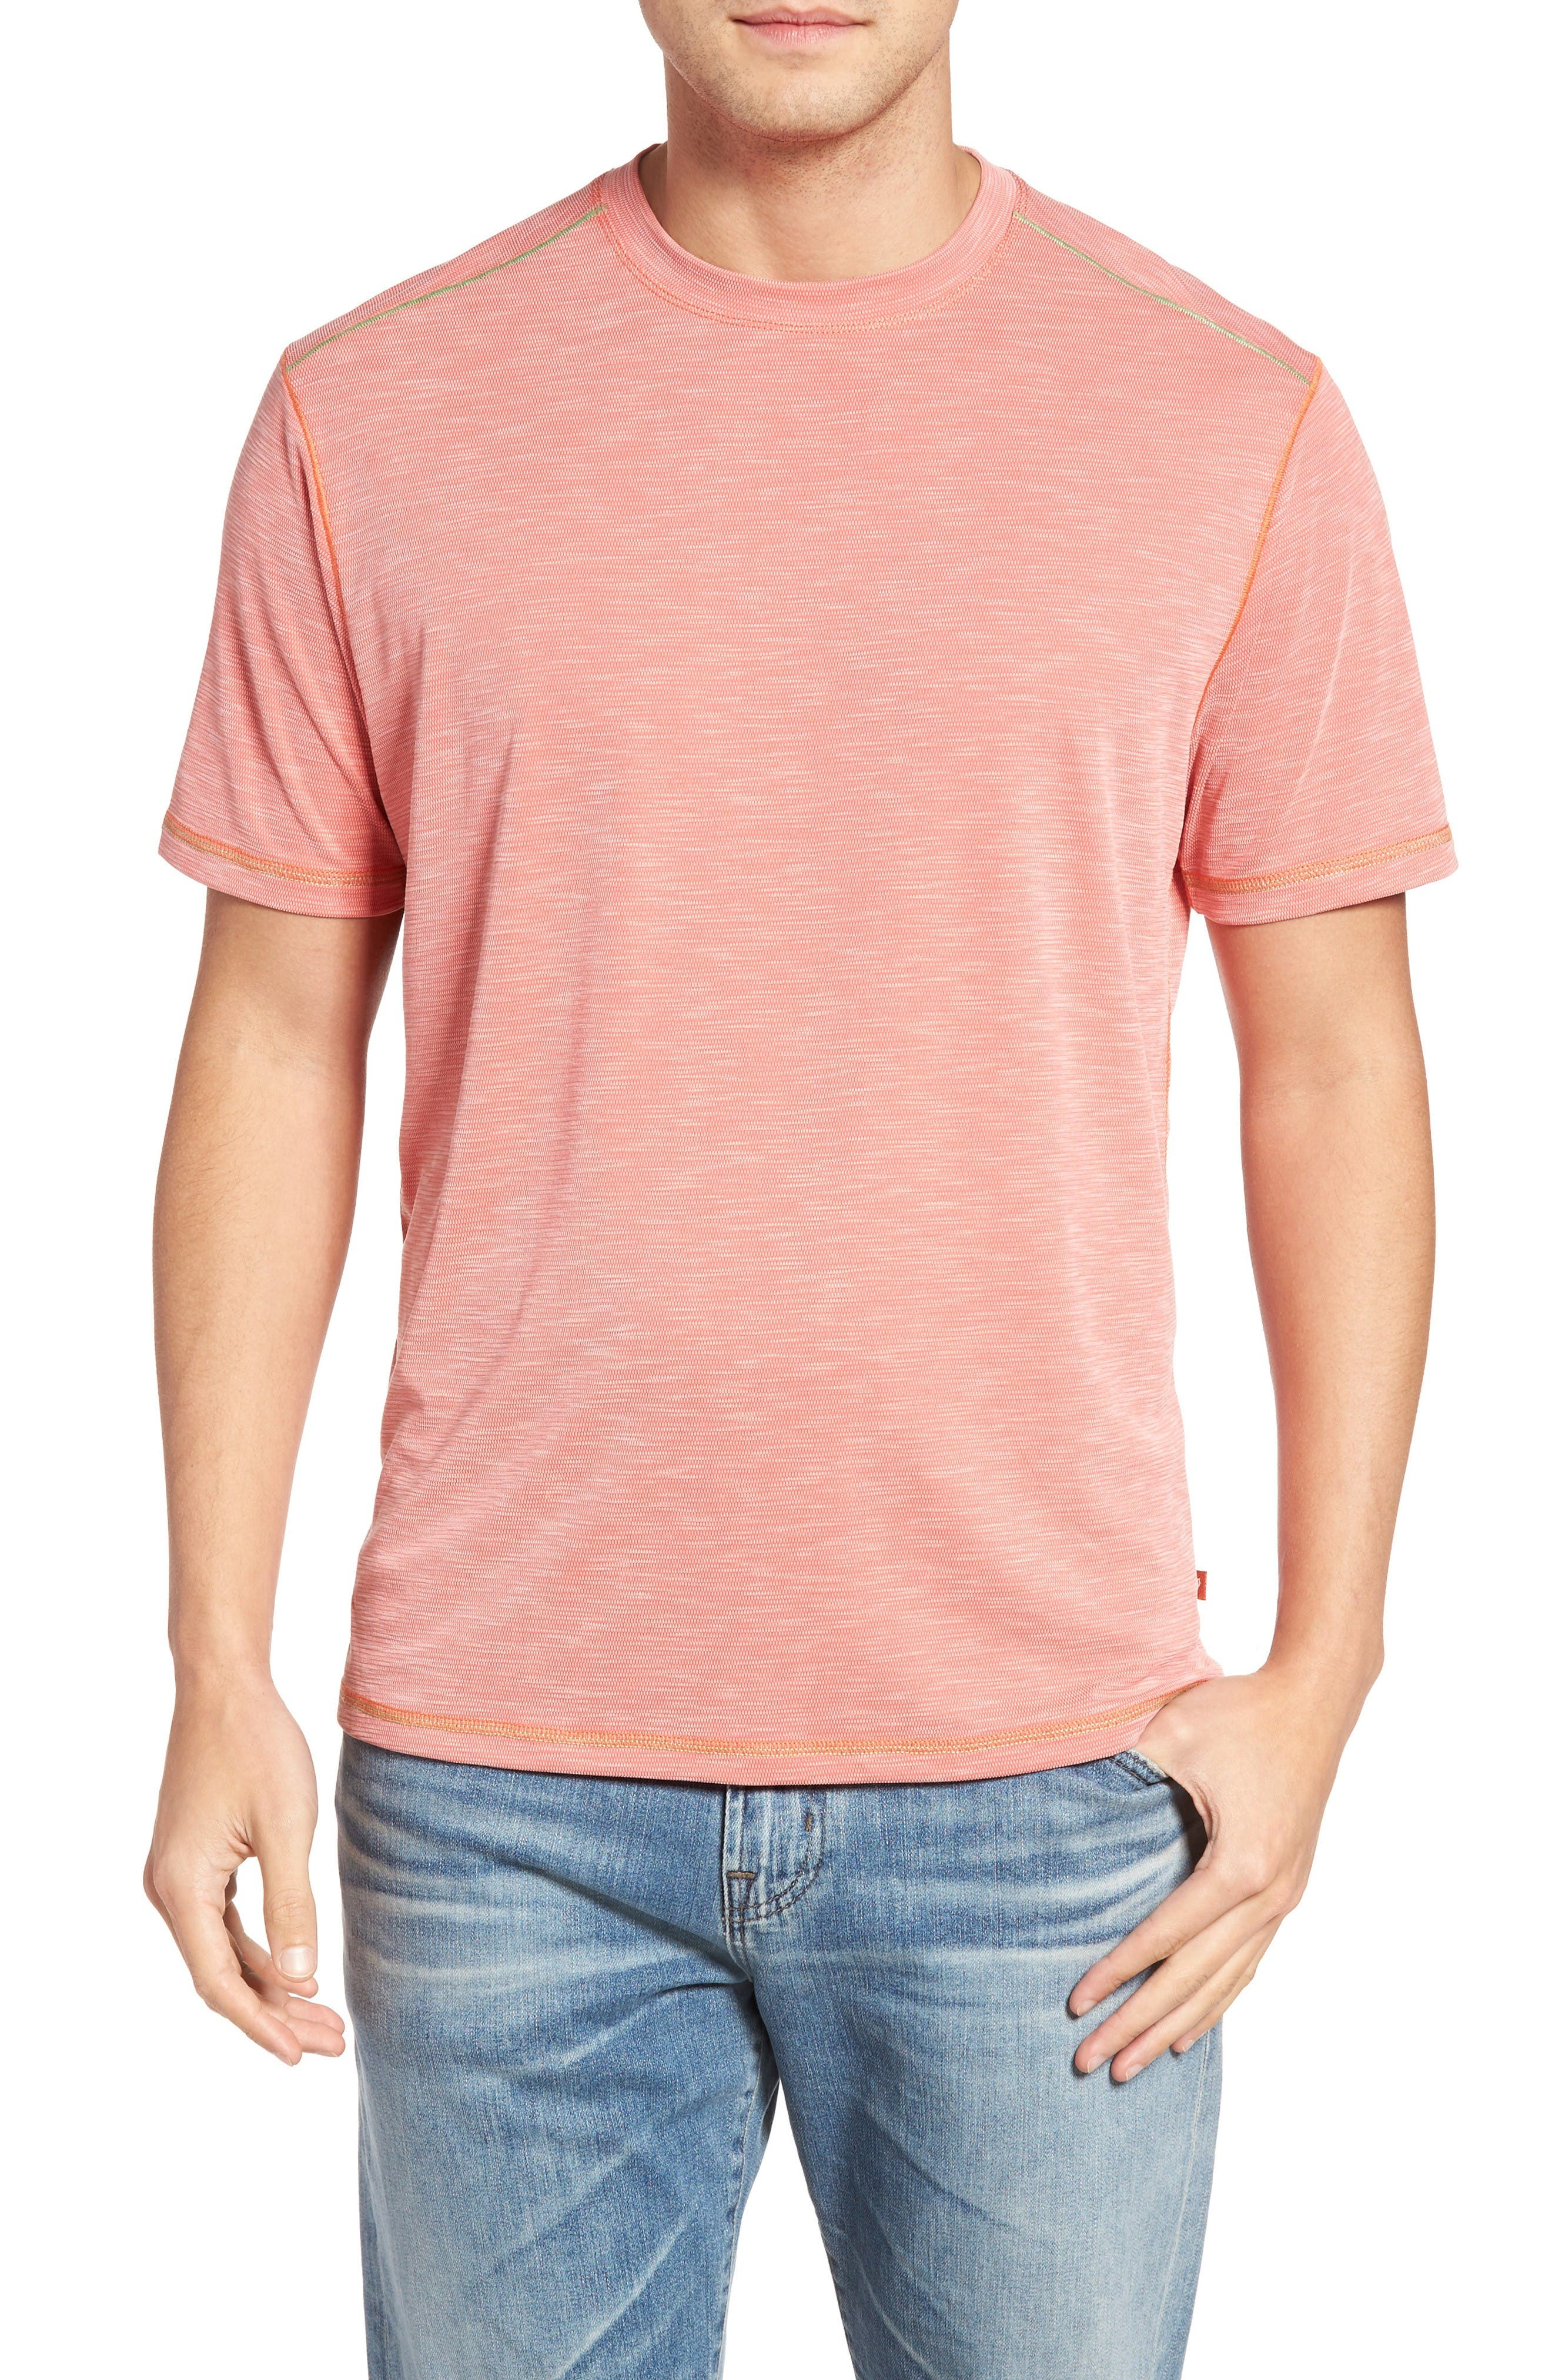 Tommy Bahama 'Paradise Around' Crewneck T-Shirt (Big & Tall)